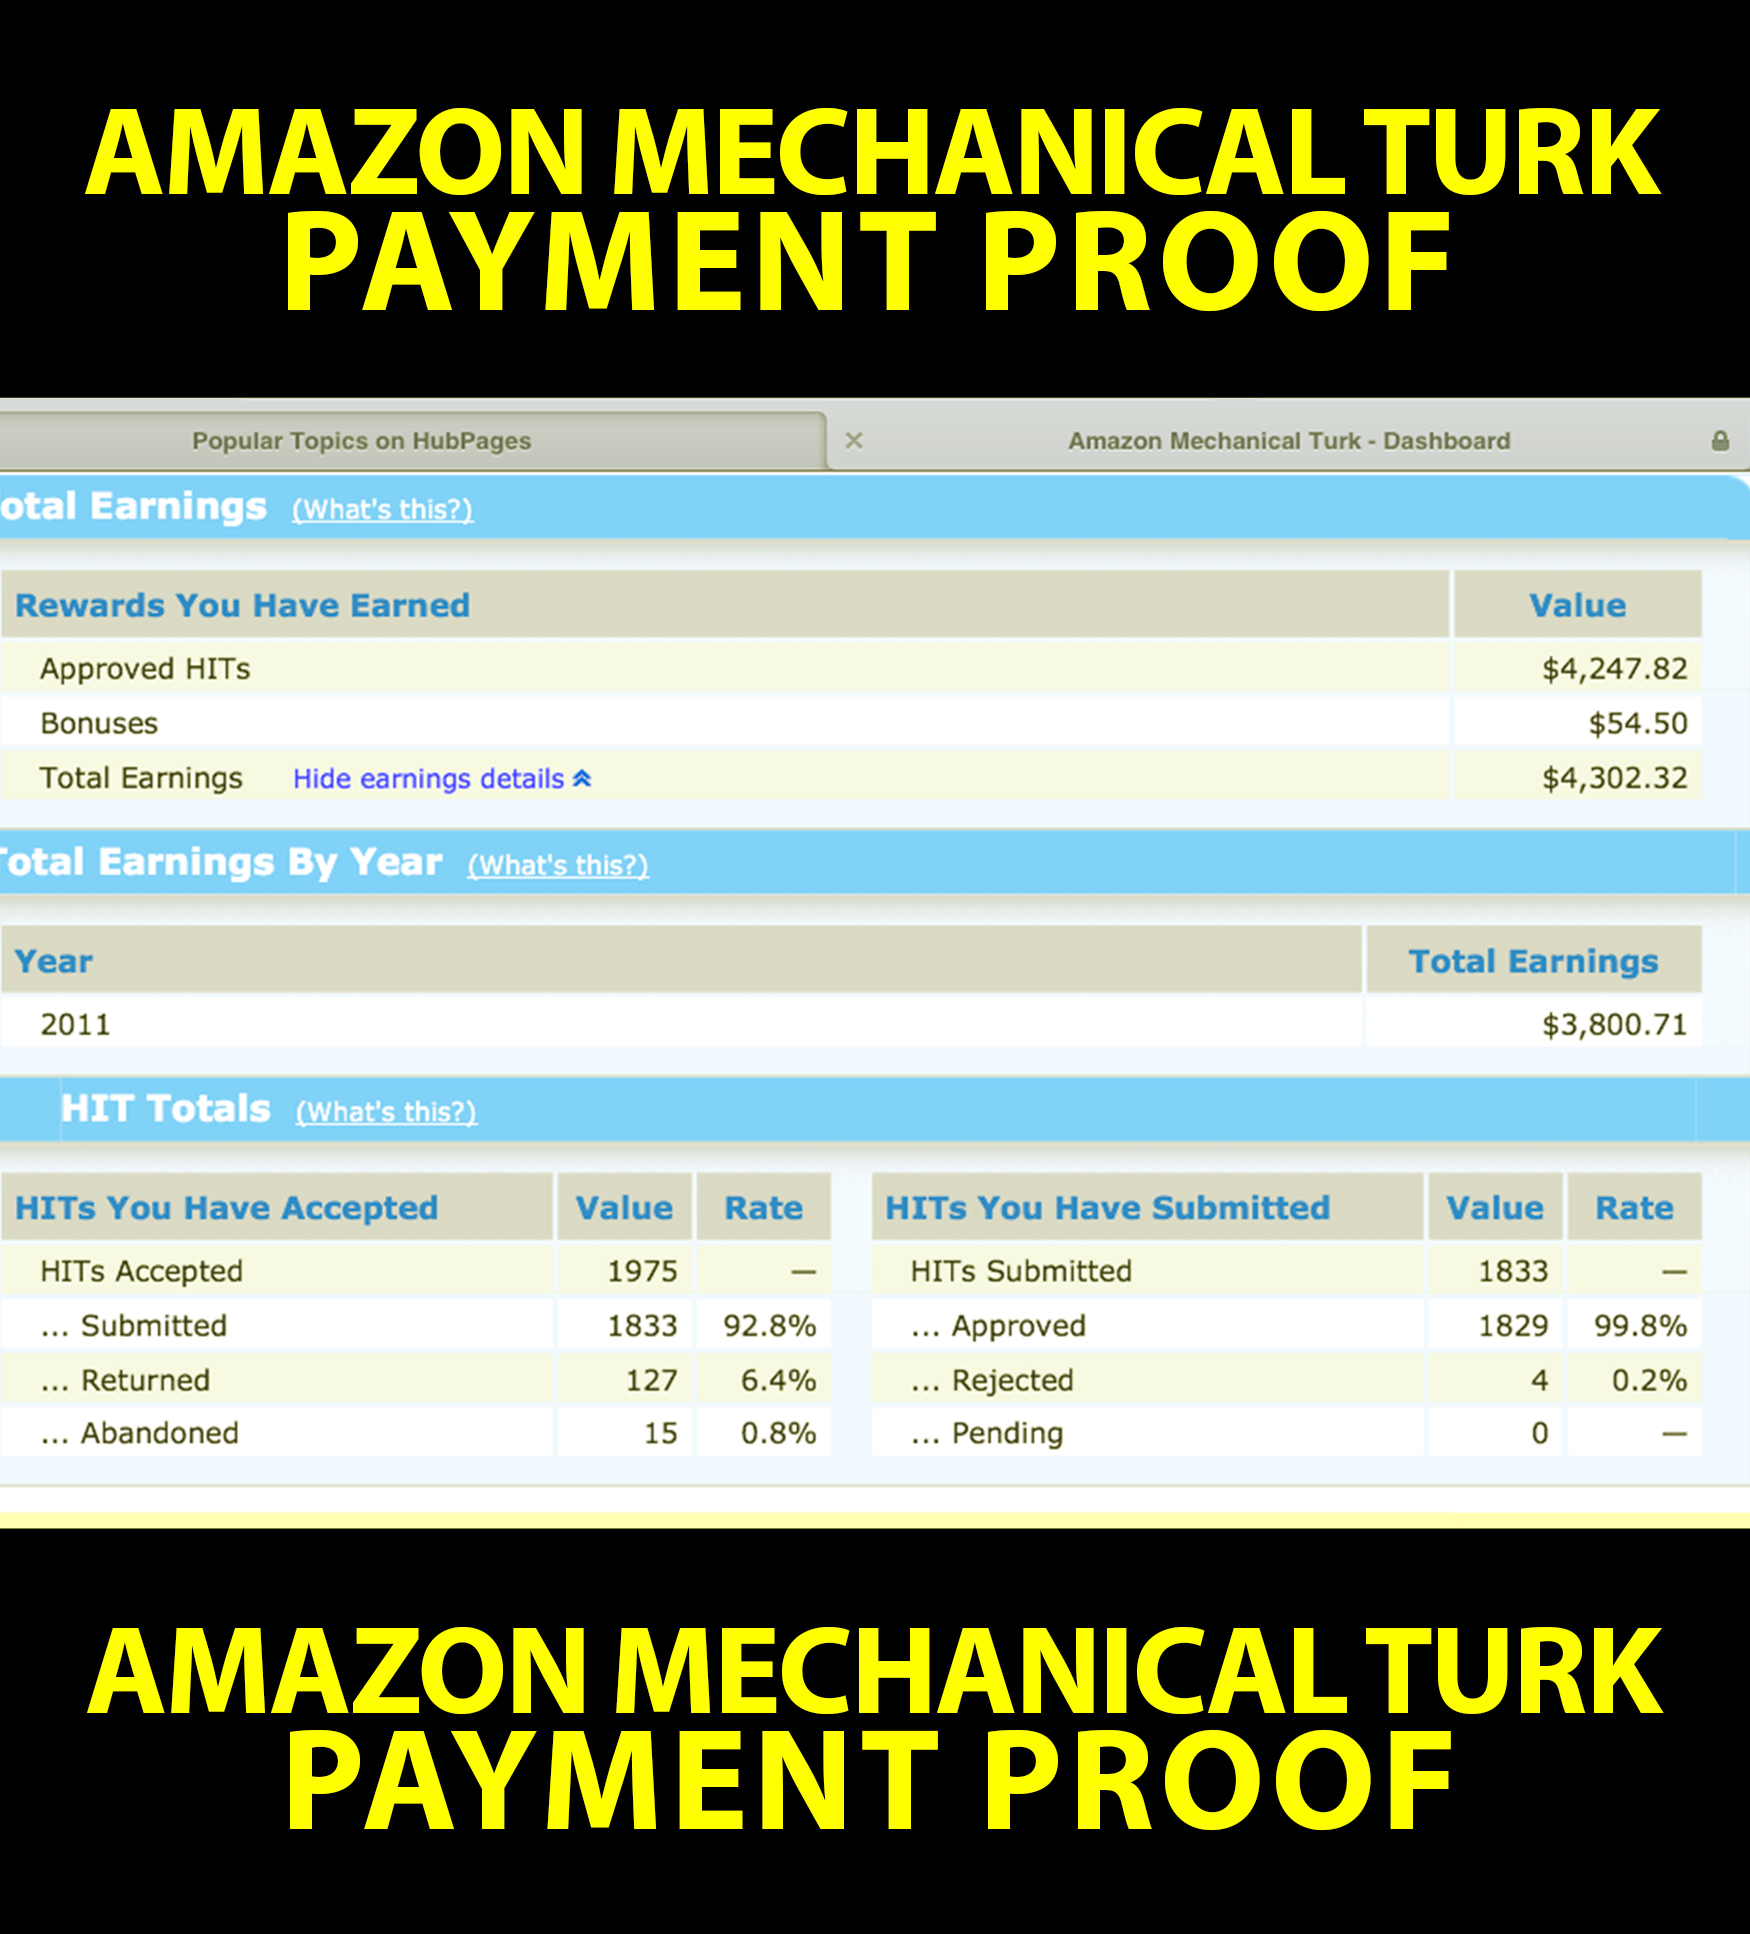 Amazon mechanical turk payment proof